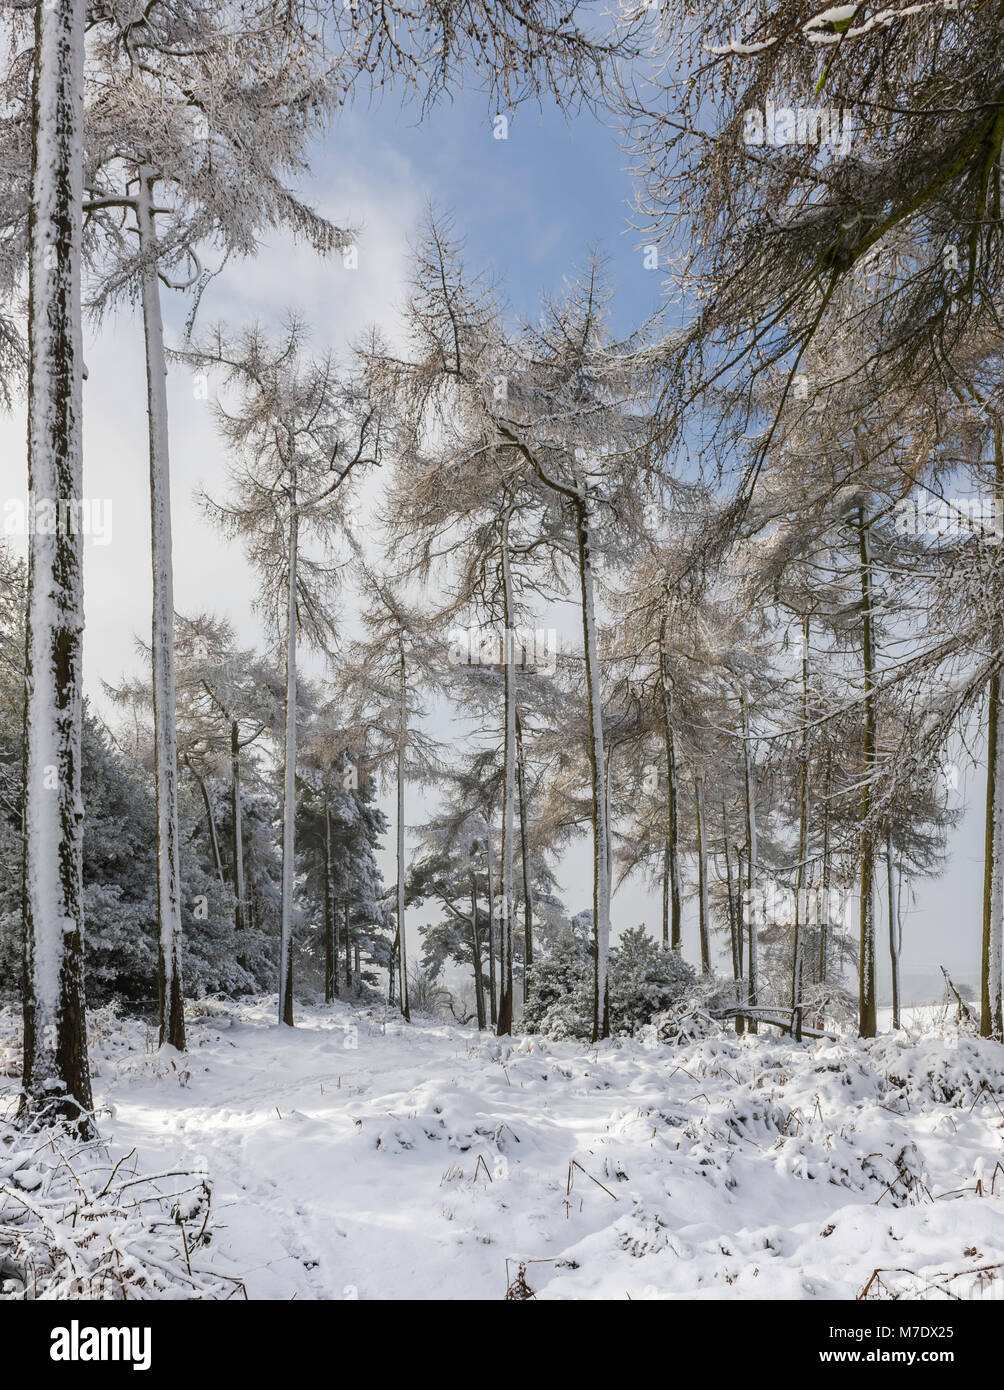 A small group of trees with snow covering the ground at Sharpley Rocks near Coalville; outskirts of Charnwood Forest, - Stock Image